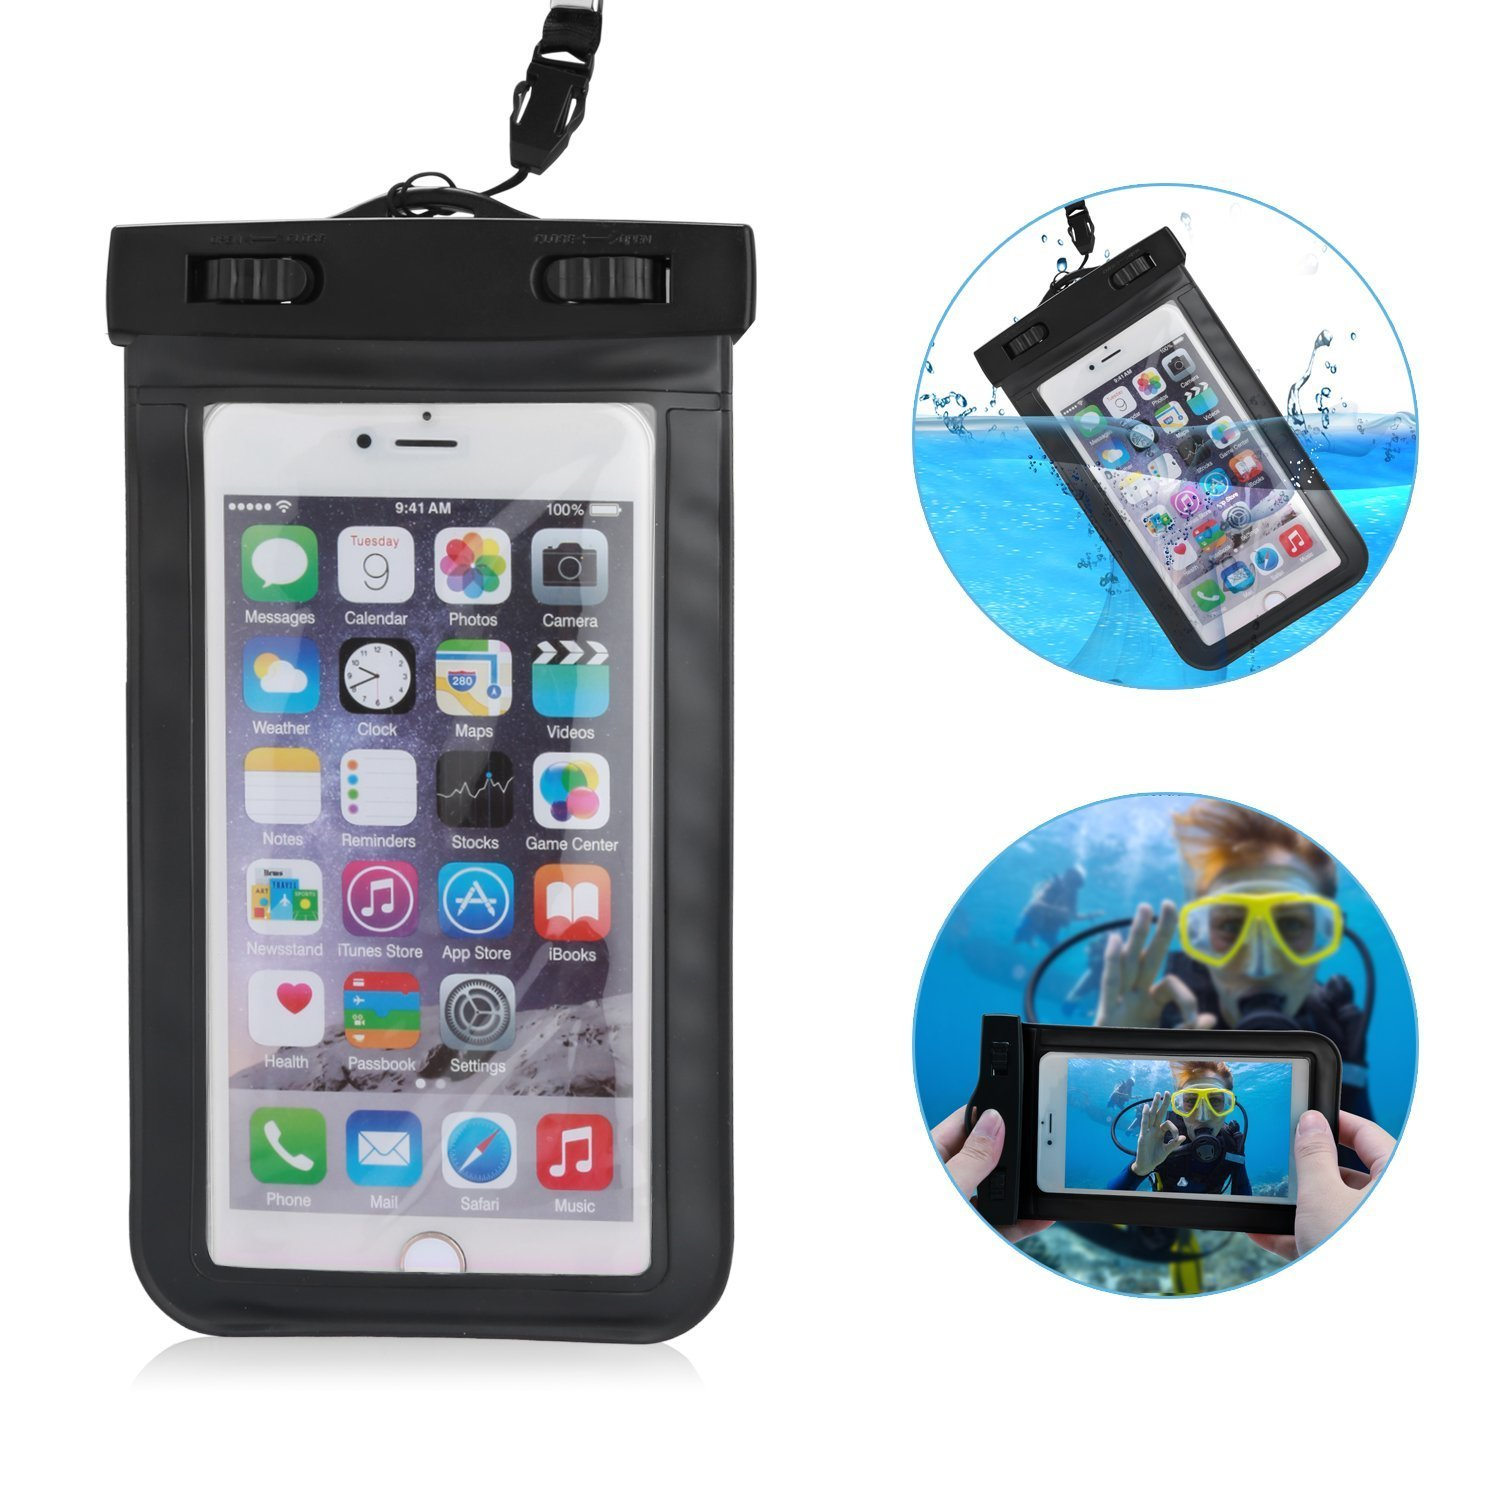 "Universal Waterproof Case CellPhone Dry Bag for iPhone 6 6S Plus SE 5S Galaxy S7 LG HTC Motorola up to 6.0"" (Black)"